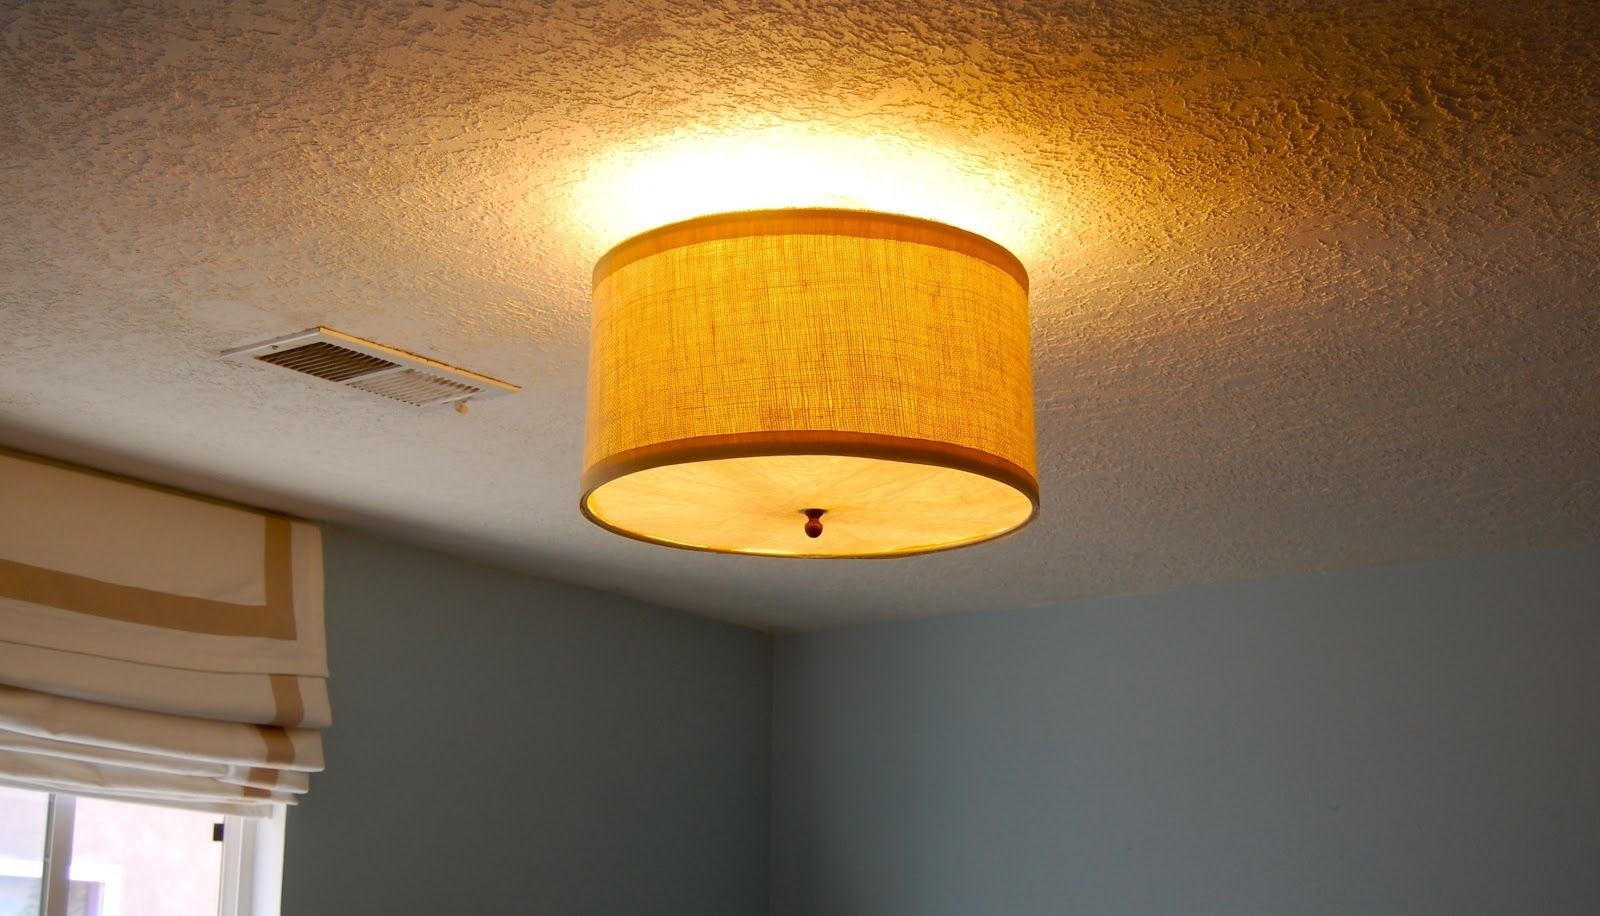 Drum shade ceiling light cover httpcreativechairsandtables drum shade ceiling light cover aloadofball Images